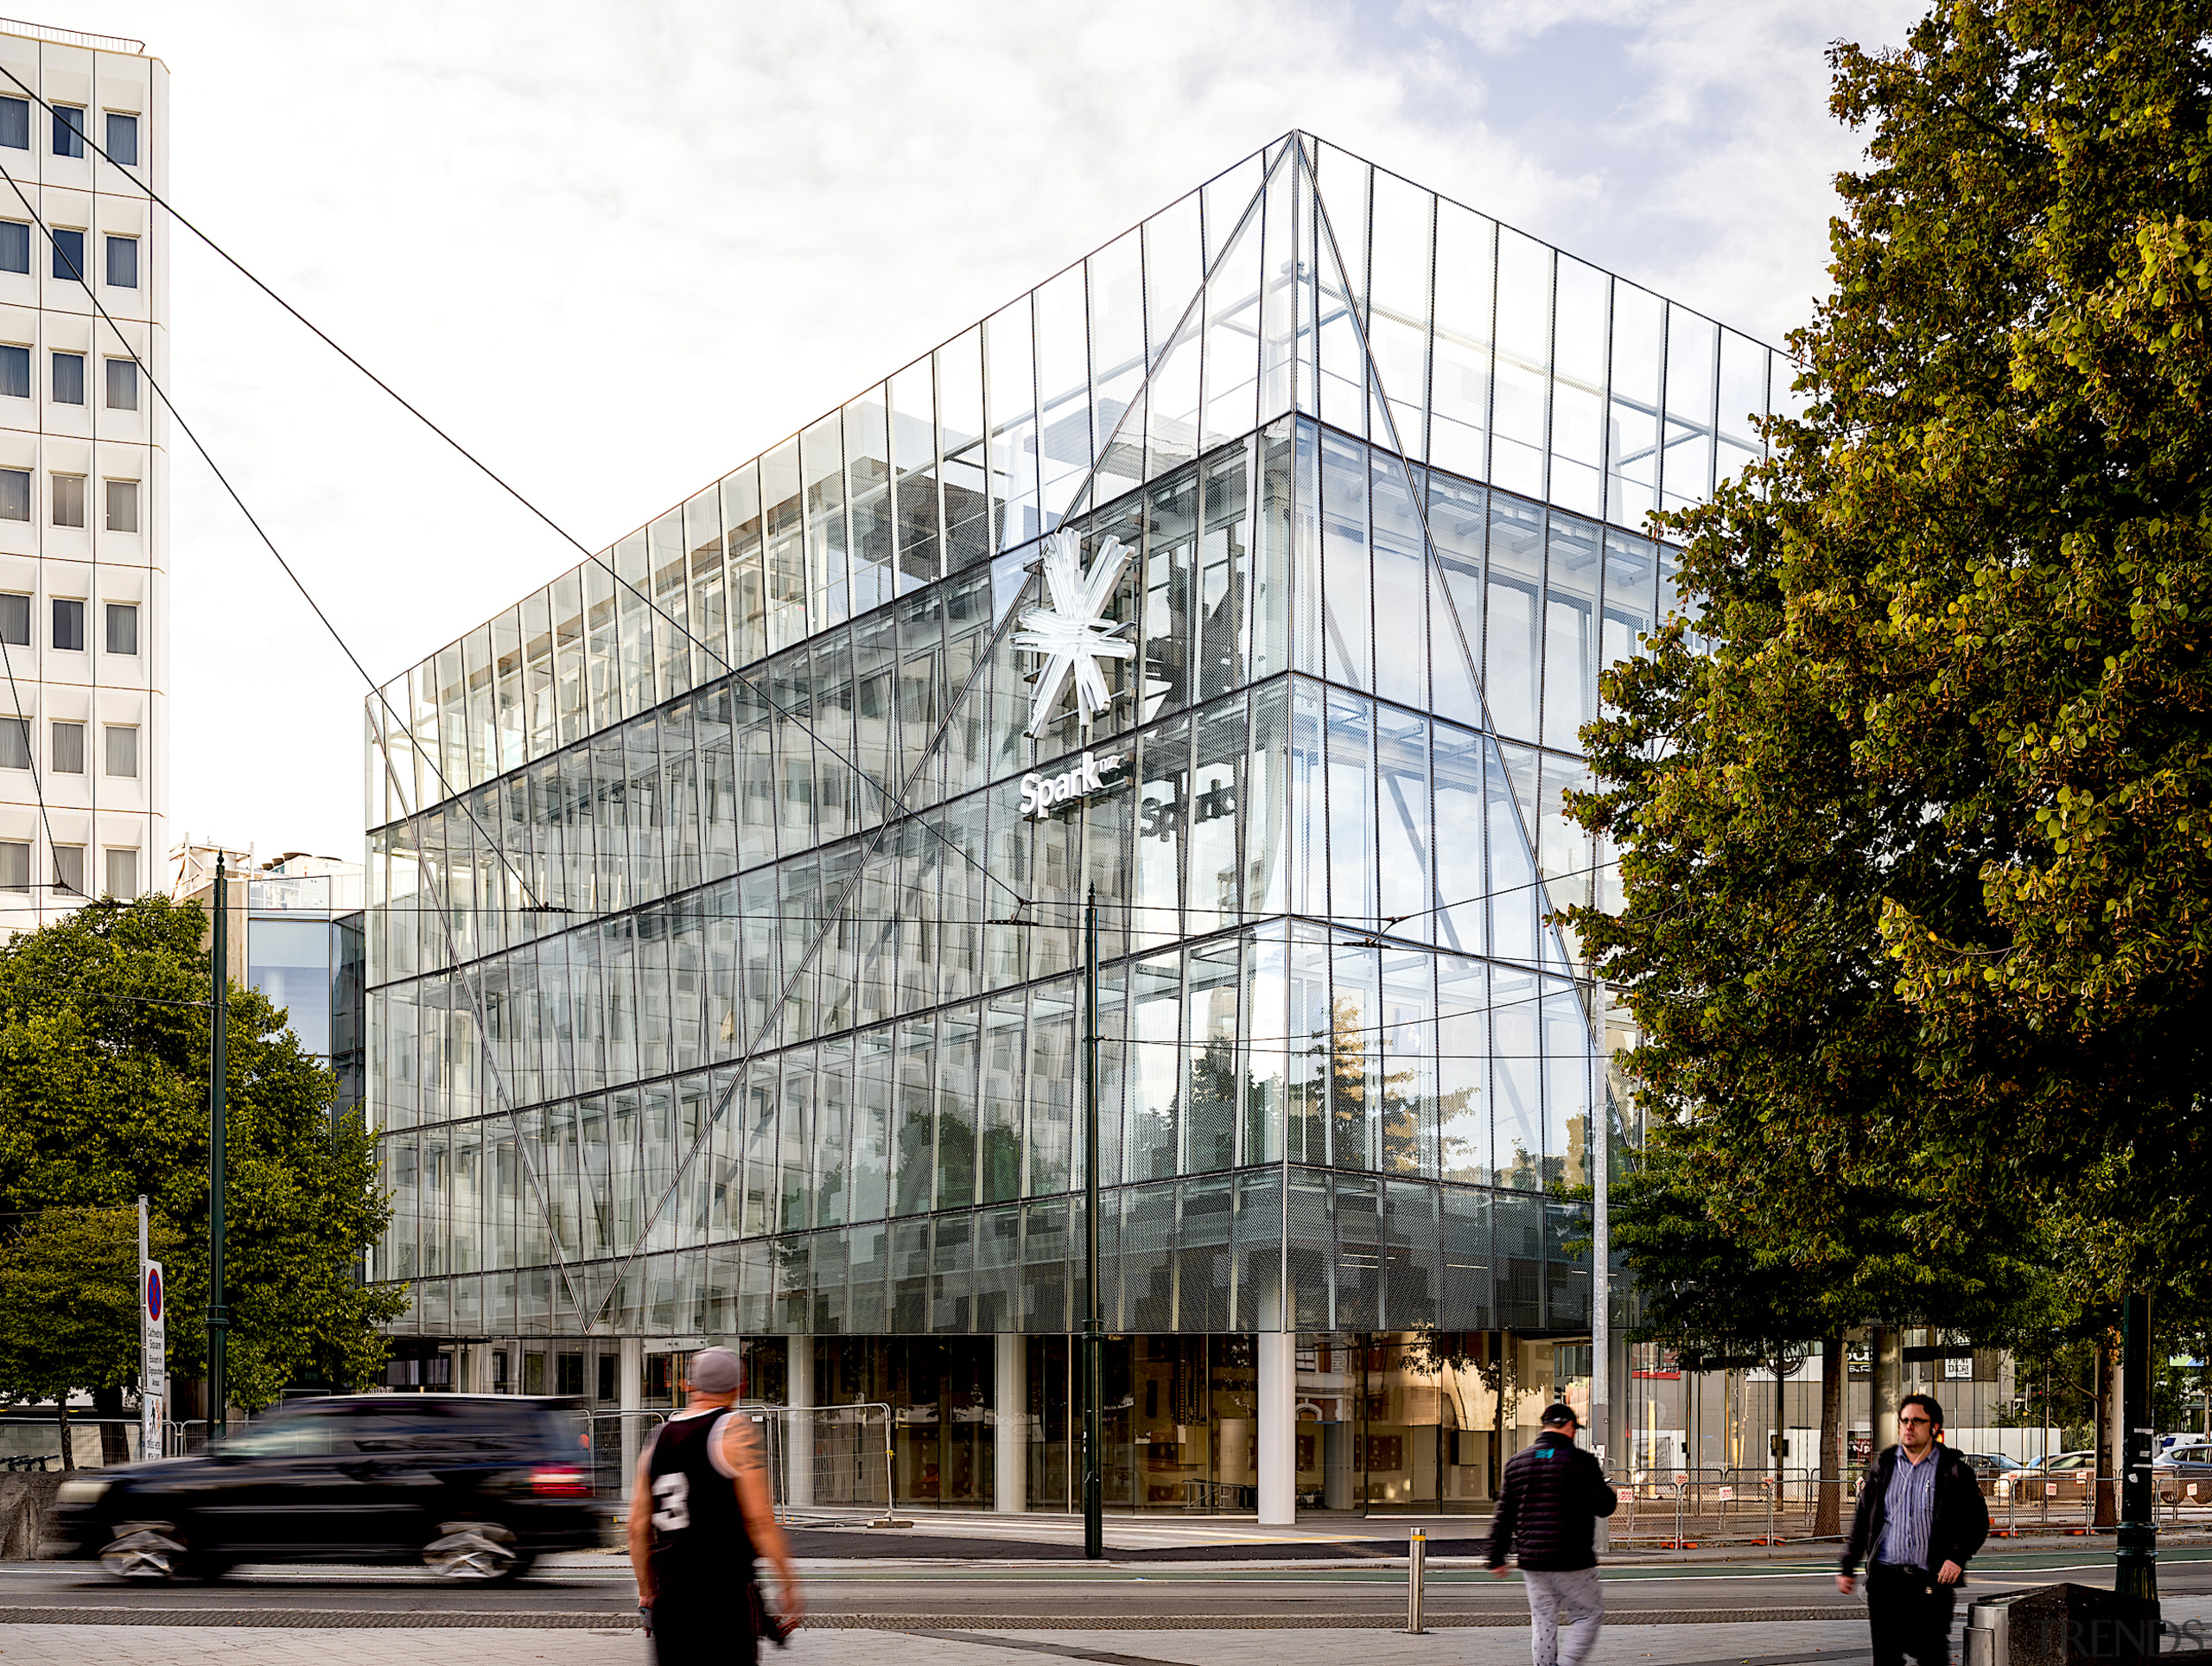 The Spark building has a double glass facade,